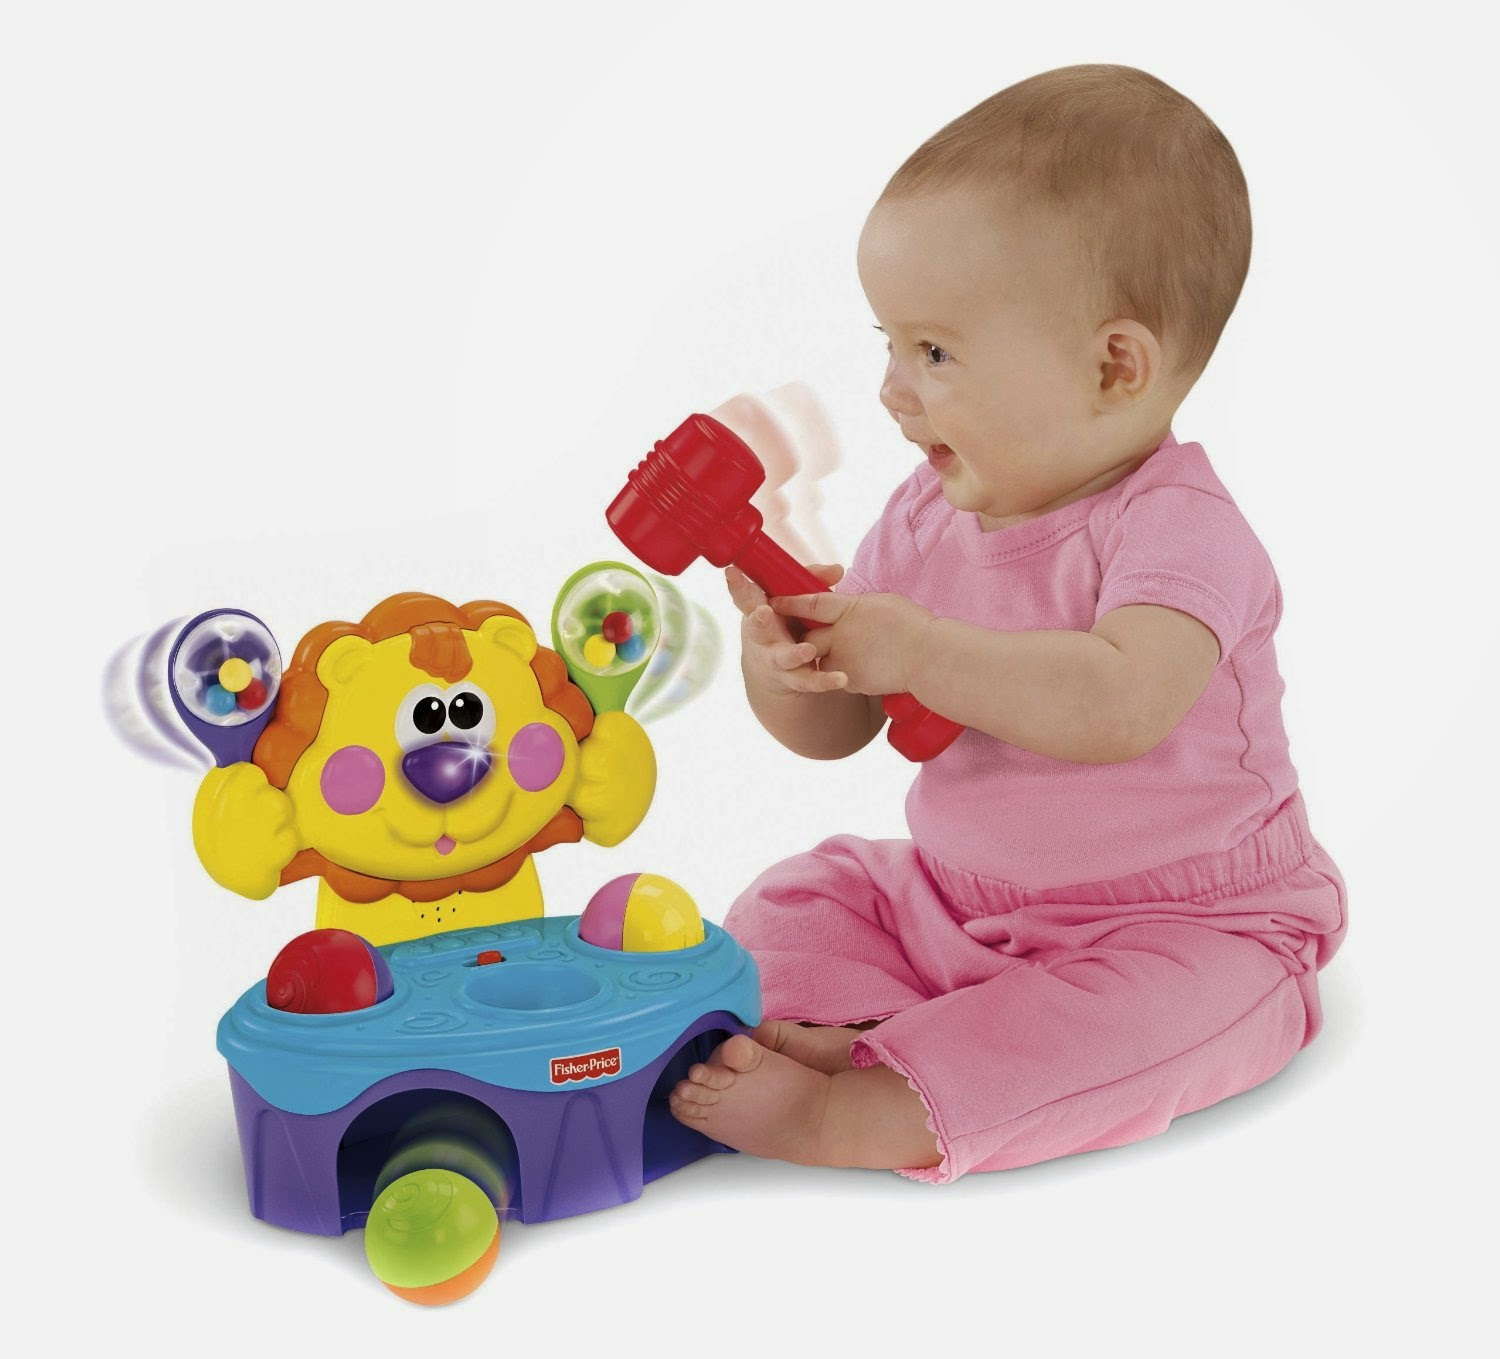 Buy Fisher-Price Go Baby Go Bop and Rock Musical Lion Rs 1699 only at Amazon